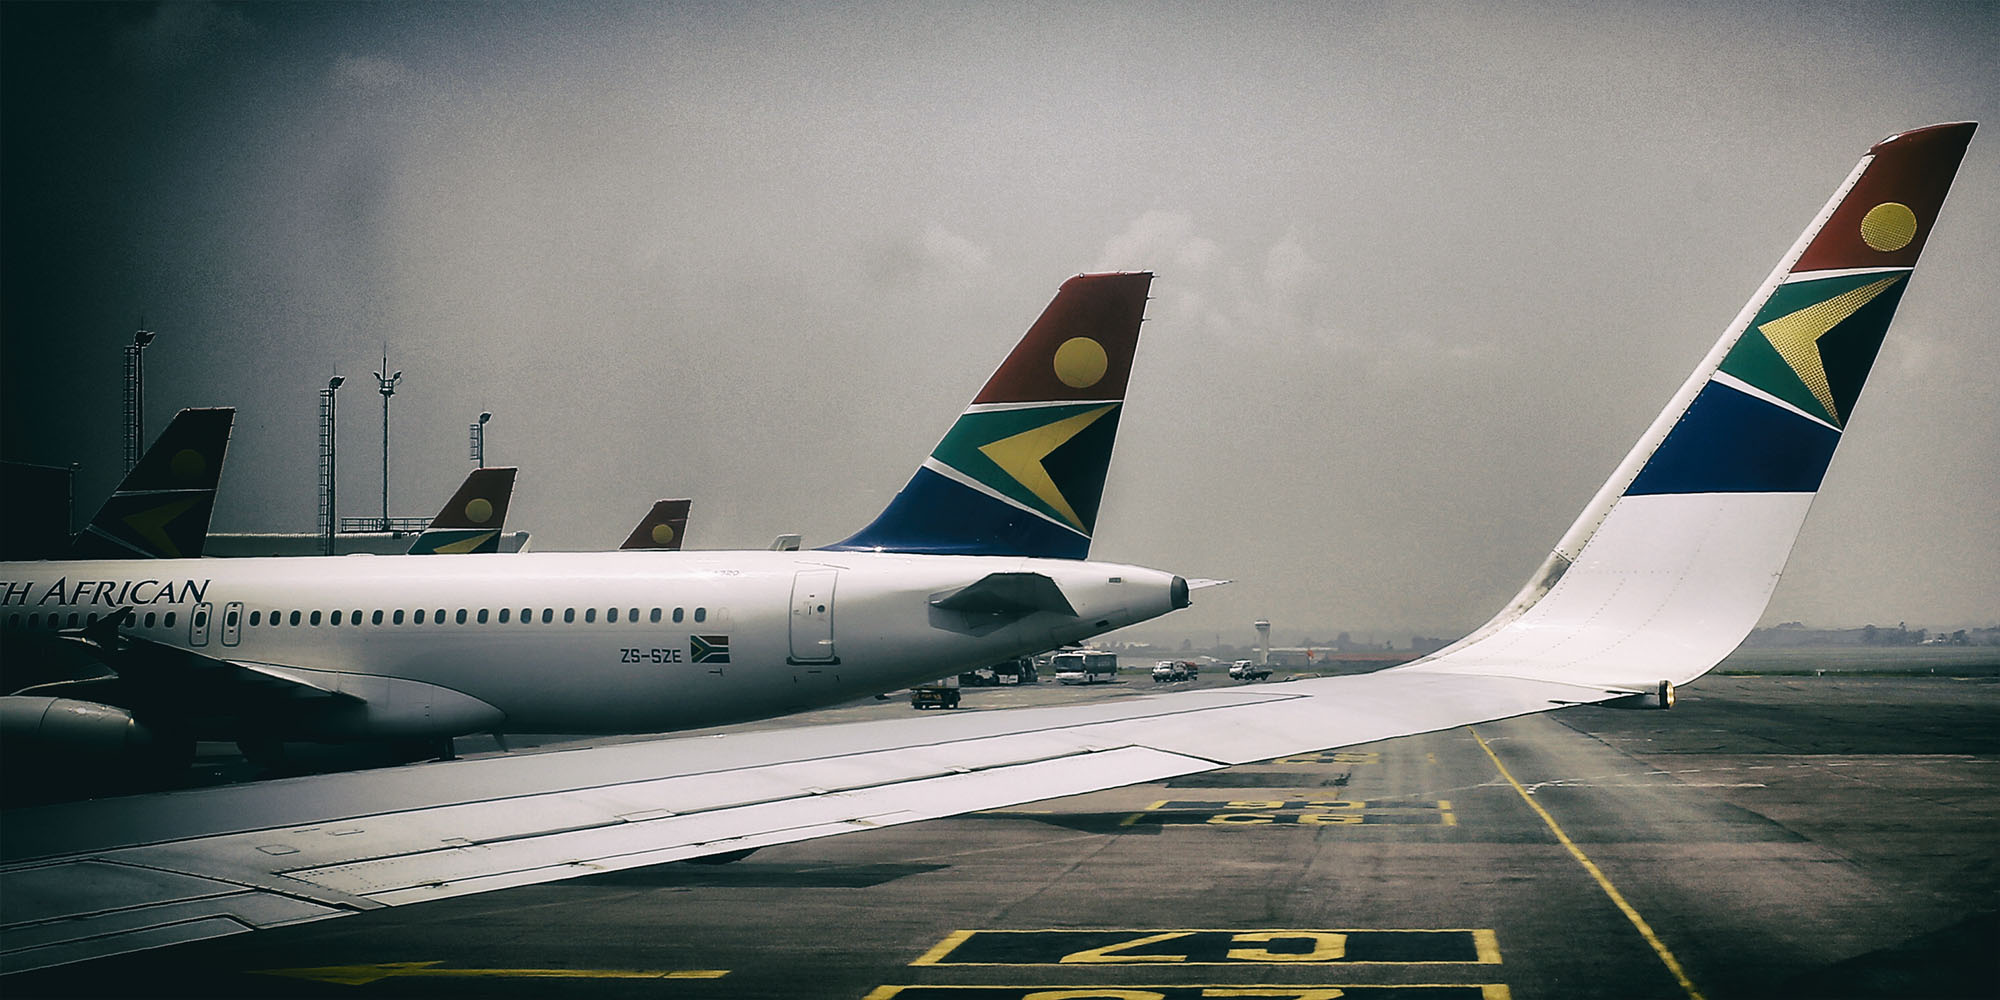 SAA WOES: SAA plunges into further crisis as boss quits